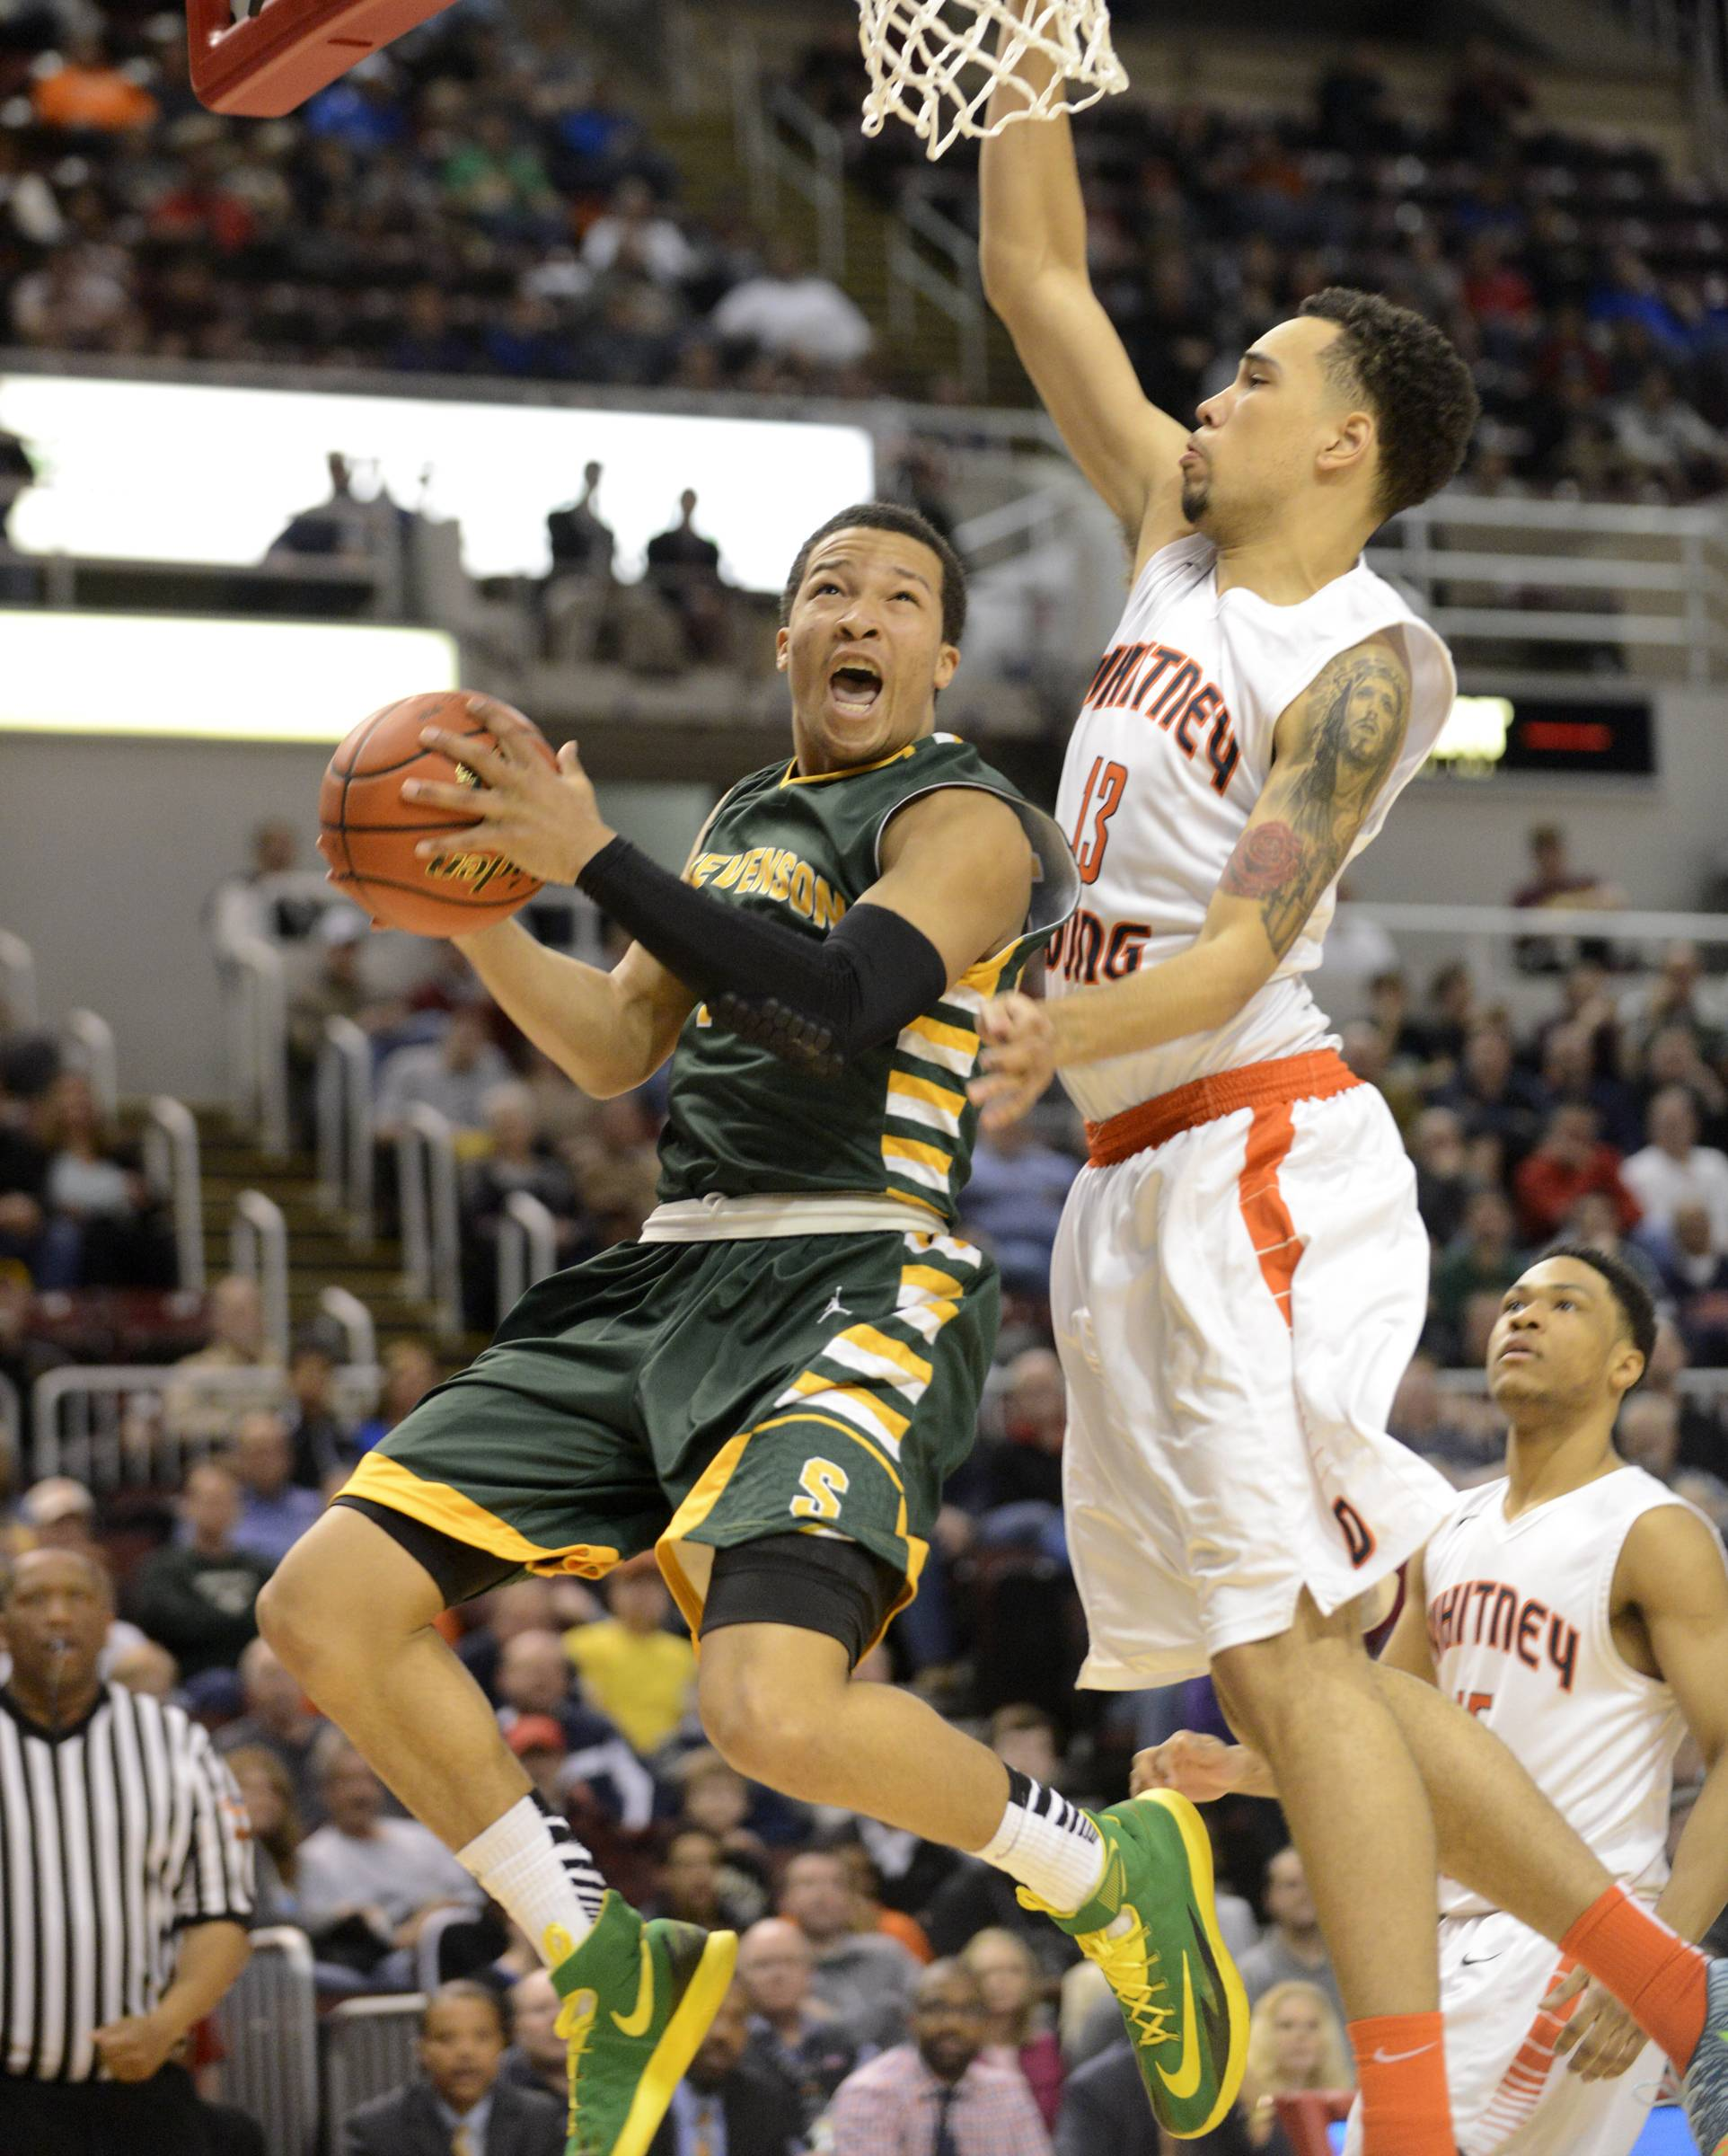 Stevenson's Jalen Brunson scores the first points of the game against Whitney Young in the Class 4A state semifinals at Carver Arena in Peoria on Friday. The Patriots junior guard set an all-time state tournament record with 56 points in a 75-68 loss.